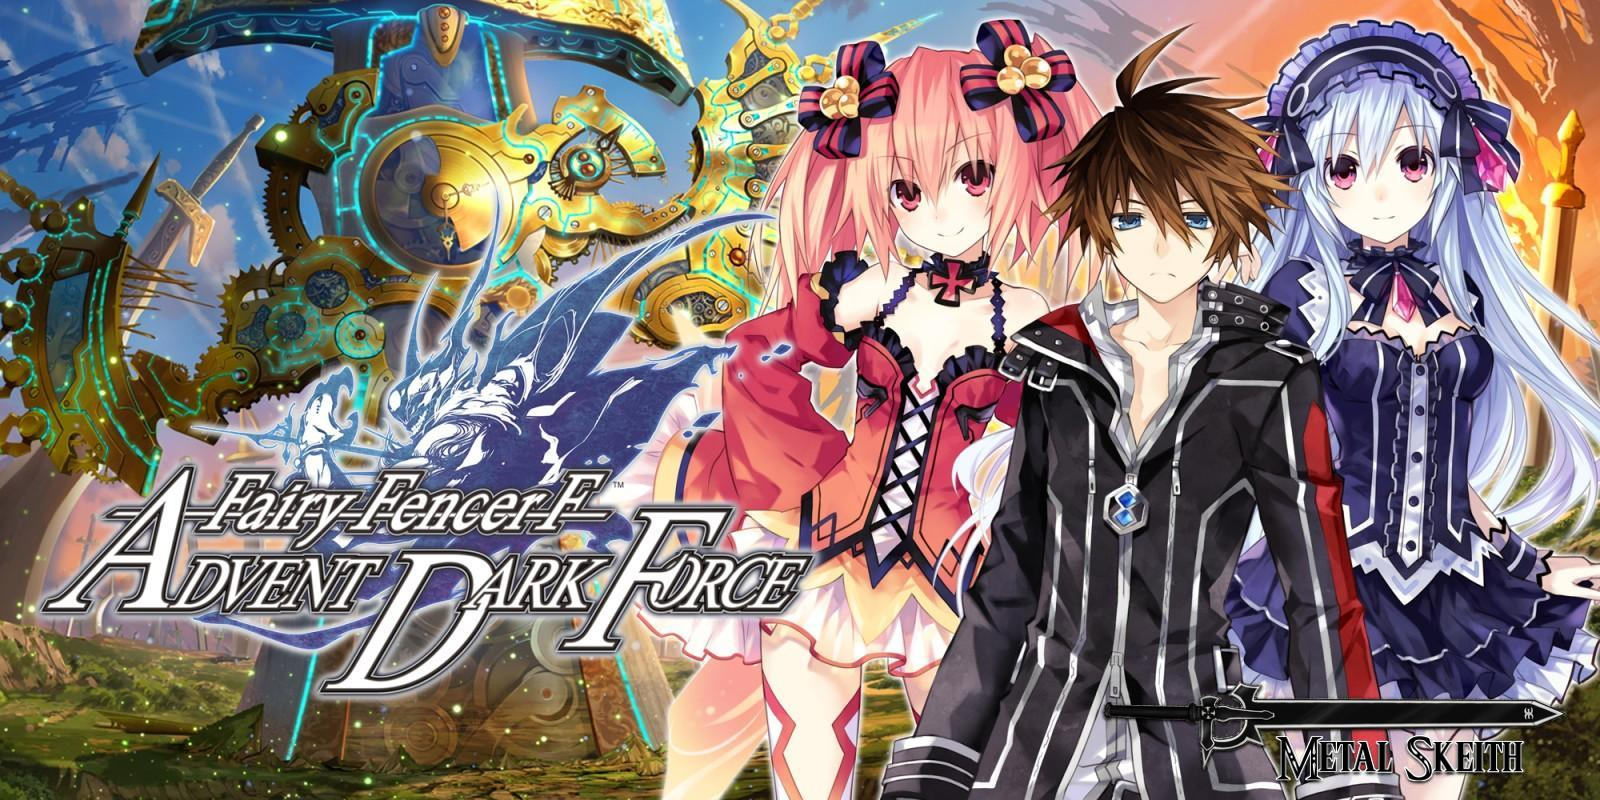 Fairy Fencer F Advent Dark Force - Partida Completa